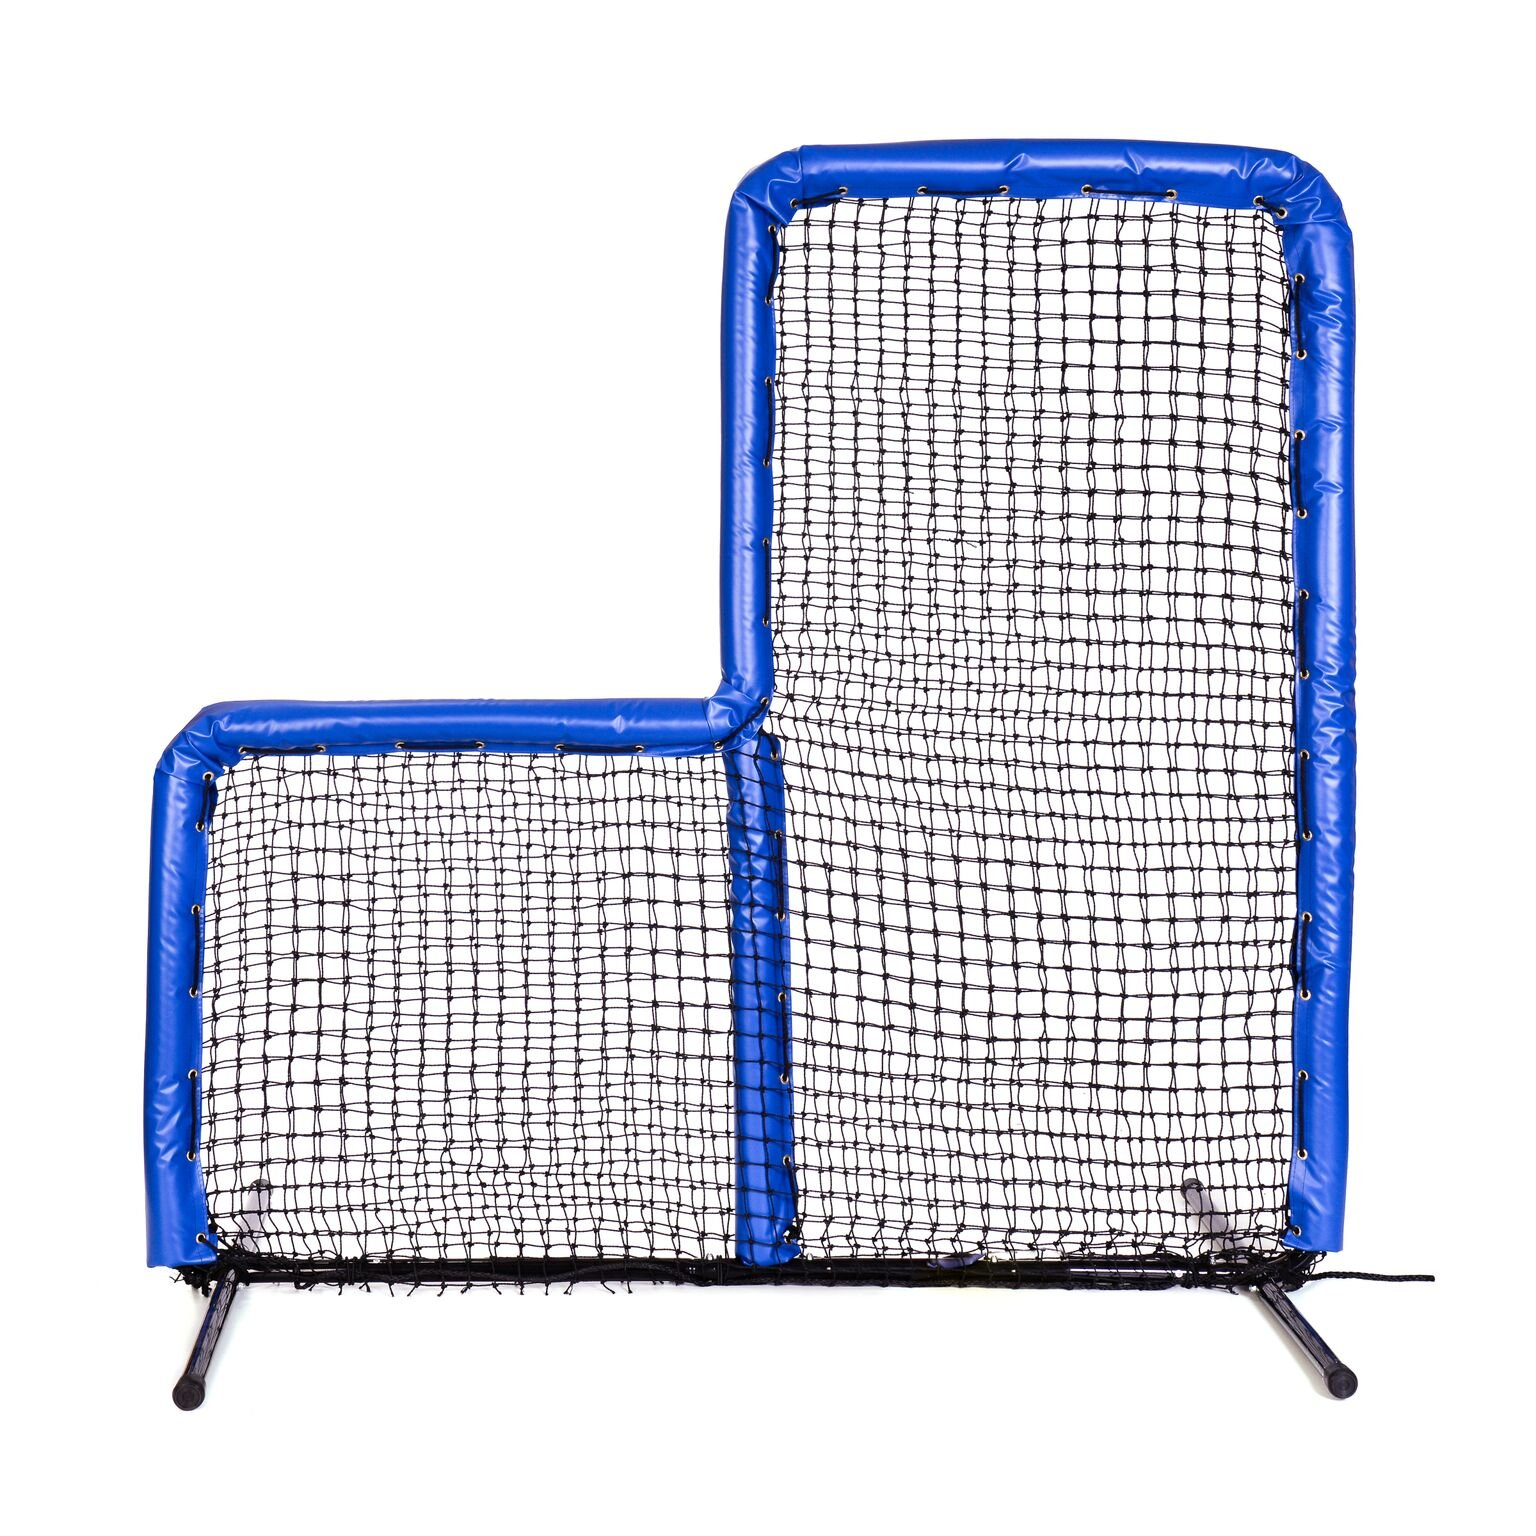 Armor Series Pitching Screen Baseball Softball Practice Net with Screen Bulletz Leg Caps. 7x7 L-Screen Perfect for Baseball and Softball Batting Practice. Choose Padding Color. (Royal) by Armor